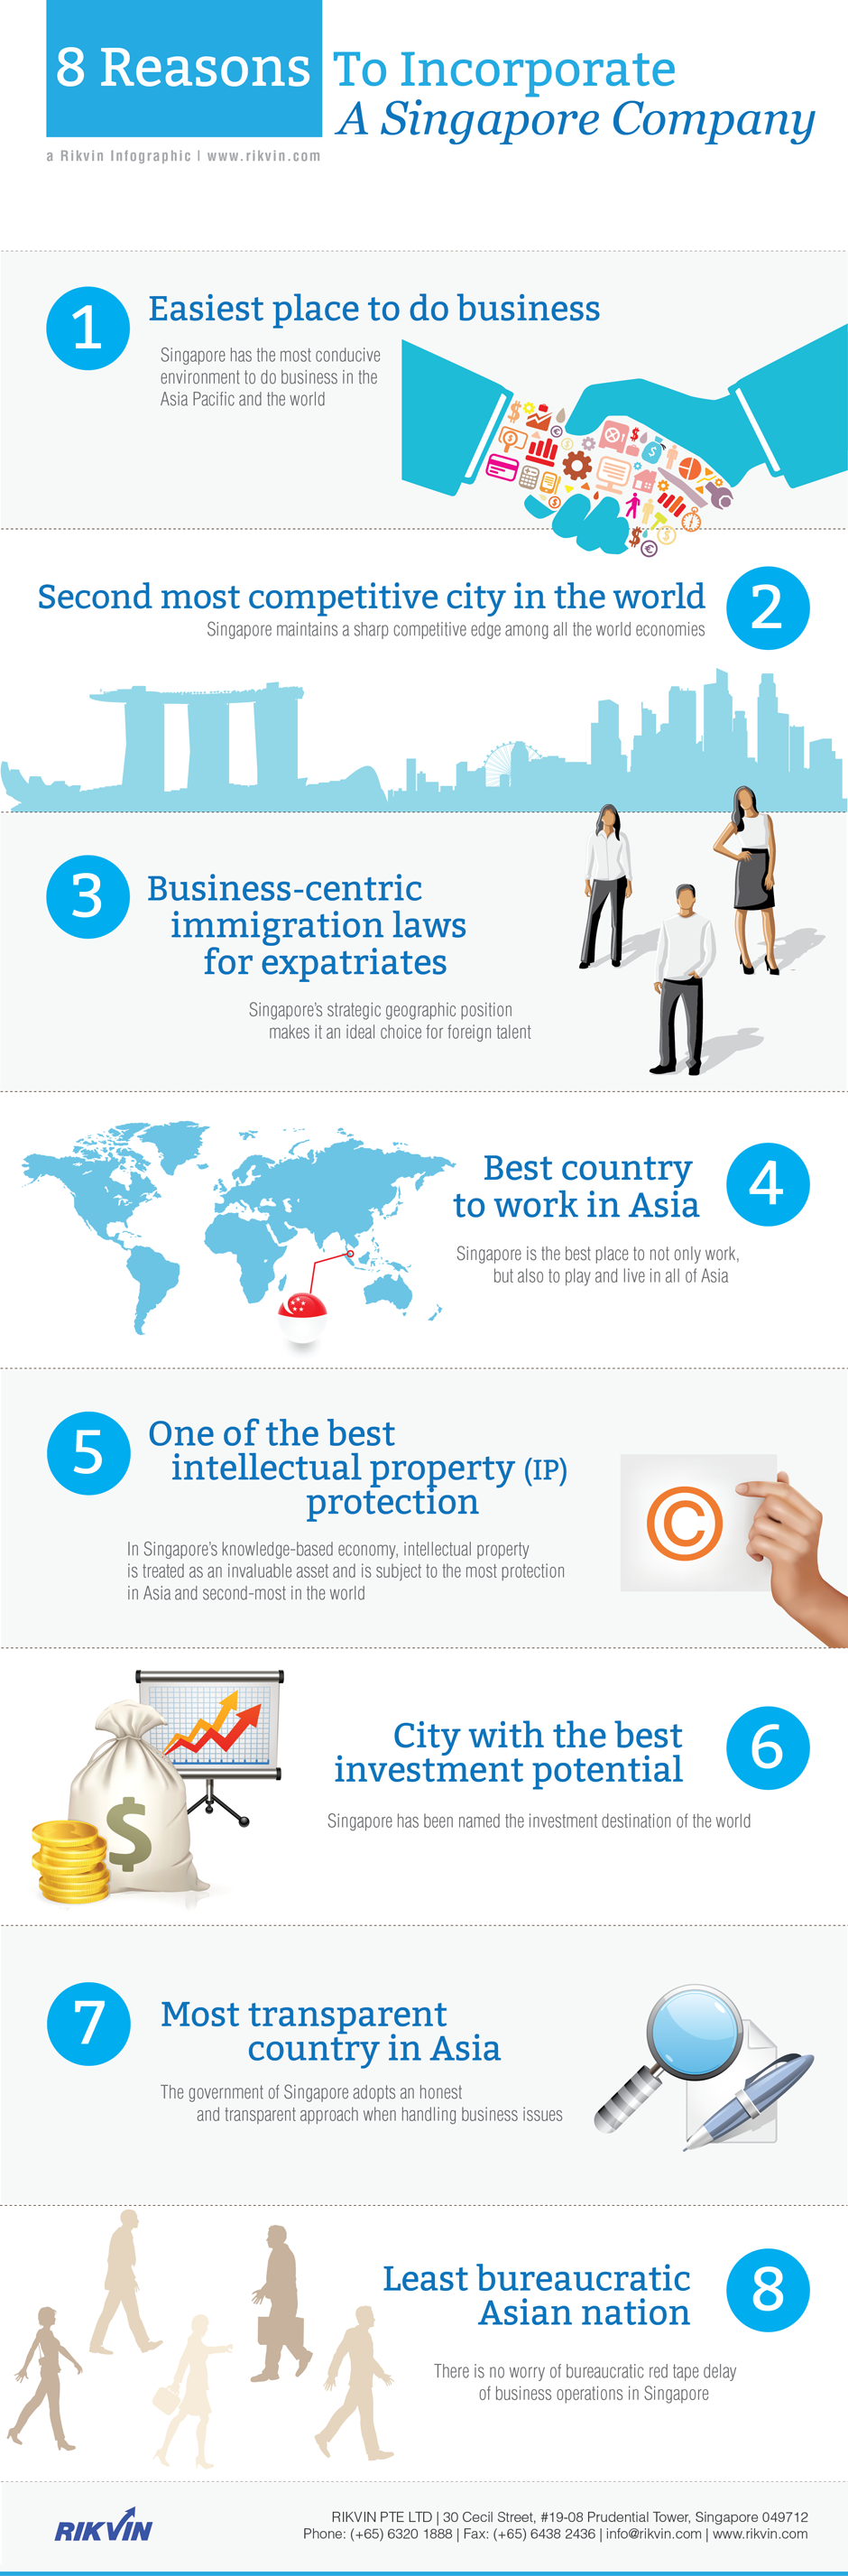 8-reasons-to-incorporate-a-company-in-Singapore Infographic: 8 Reasons to Incorporate a Singapore Company  8-reasons-to-incorporate-a-company-in-Singapore Infographic: 8 Reasons to Incorporate a Singapore Company